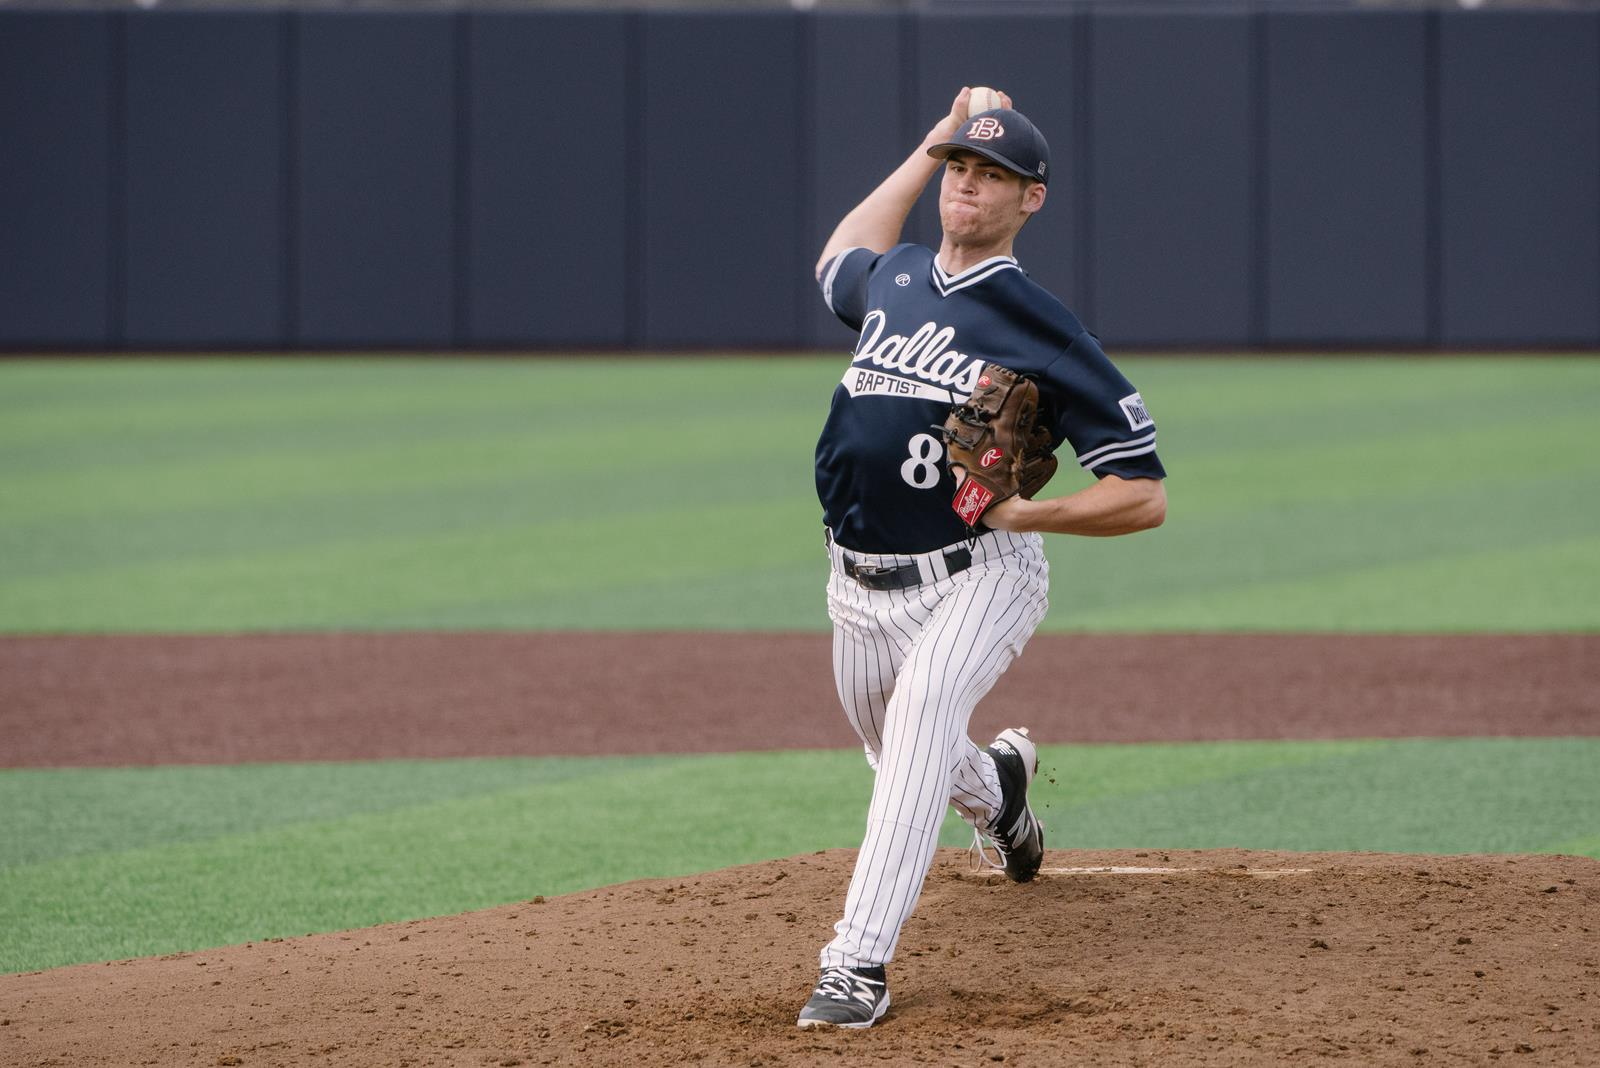 The Official Site of Dallas Baptist University Athletics: http://dbusports.com/news/2016/4/22/baseball-no-24-dbu-slips-past-indiana-state-3-2.aspx